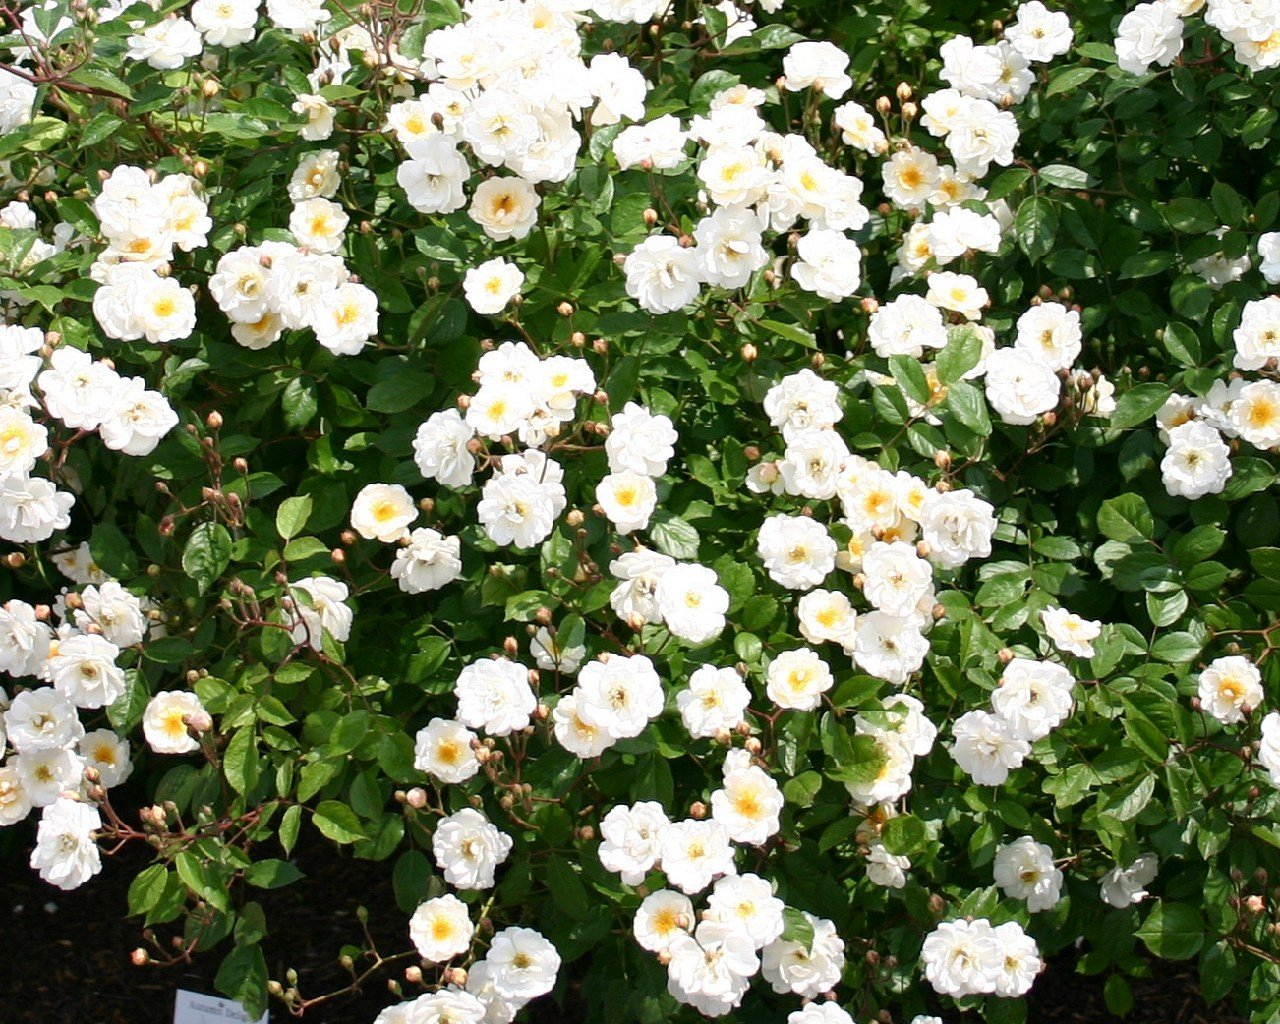 Autumn Delight (Musk Rose)